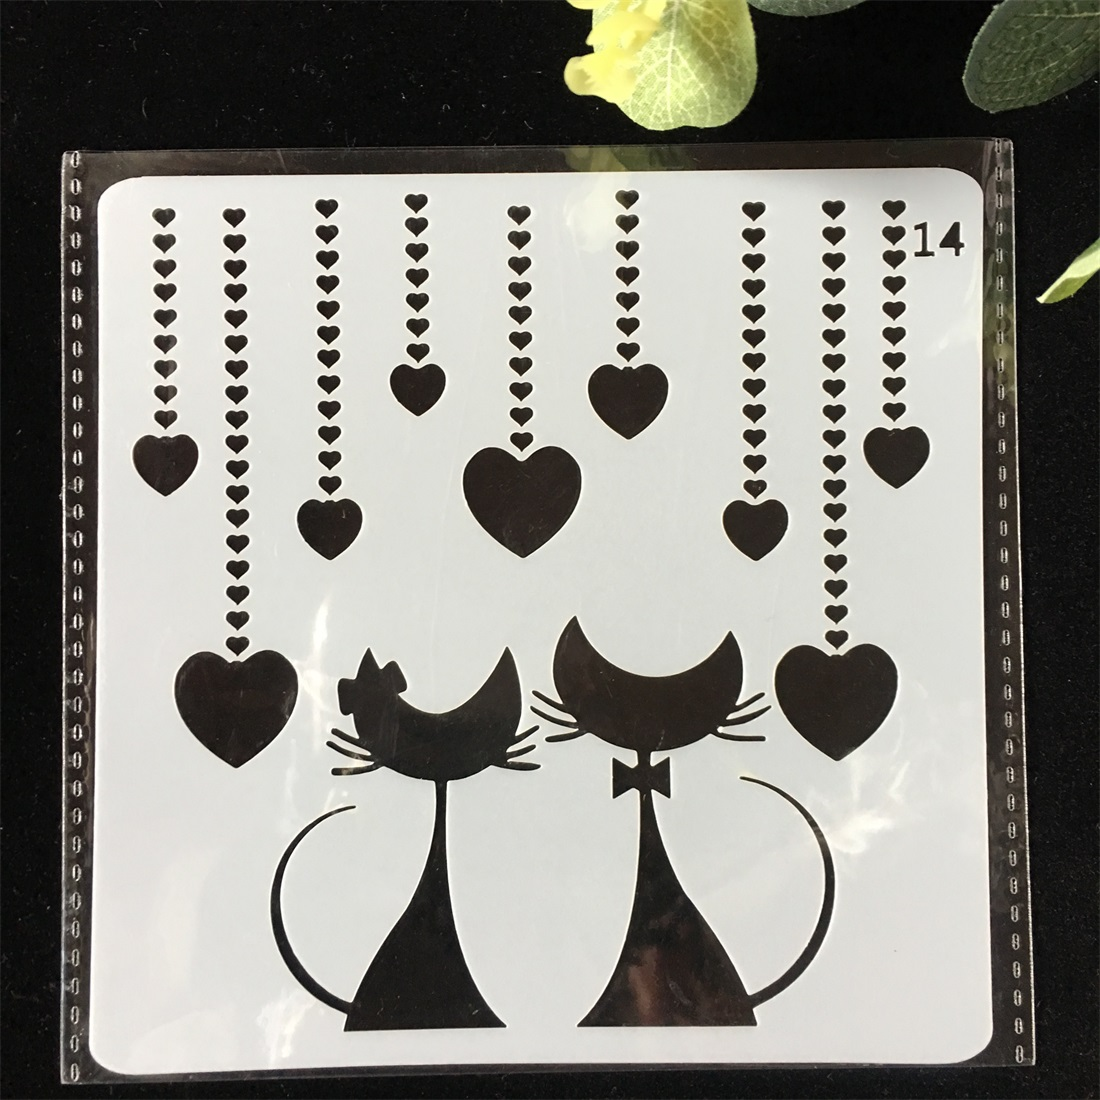 1Pcs 13cm Lover Heart Cat DIY Layering Stencils Wall Painting Scrapbook Coloring Embossing Album Decorative Card Template